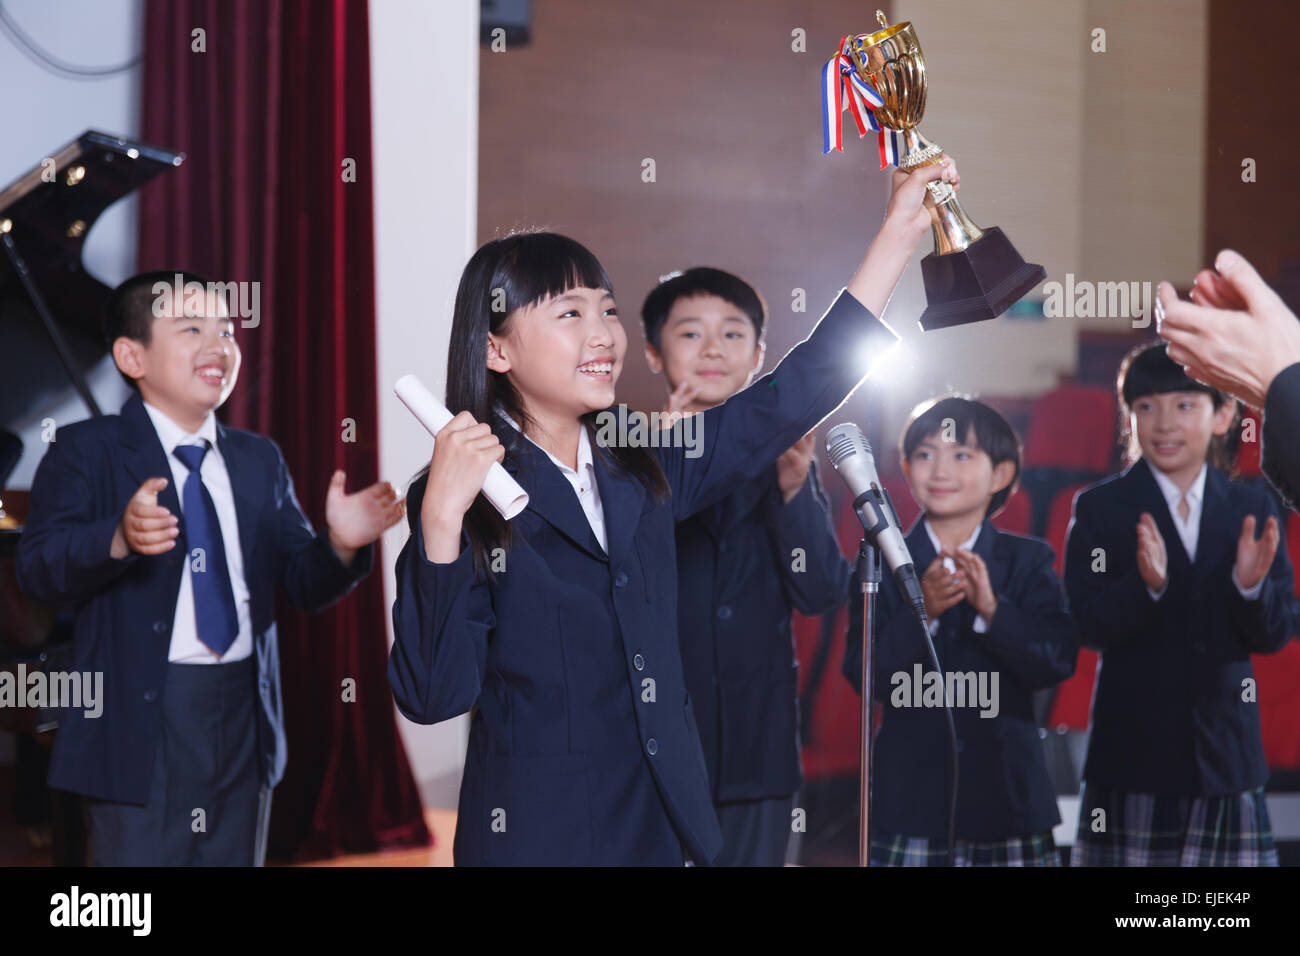 Excited schoolchildren waving arms holding a trophy - Stock Image